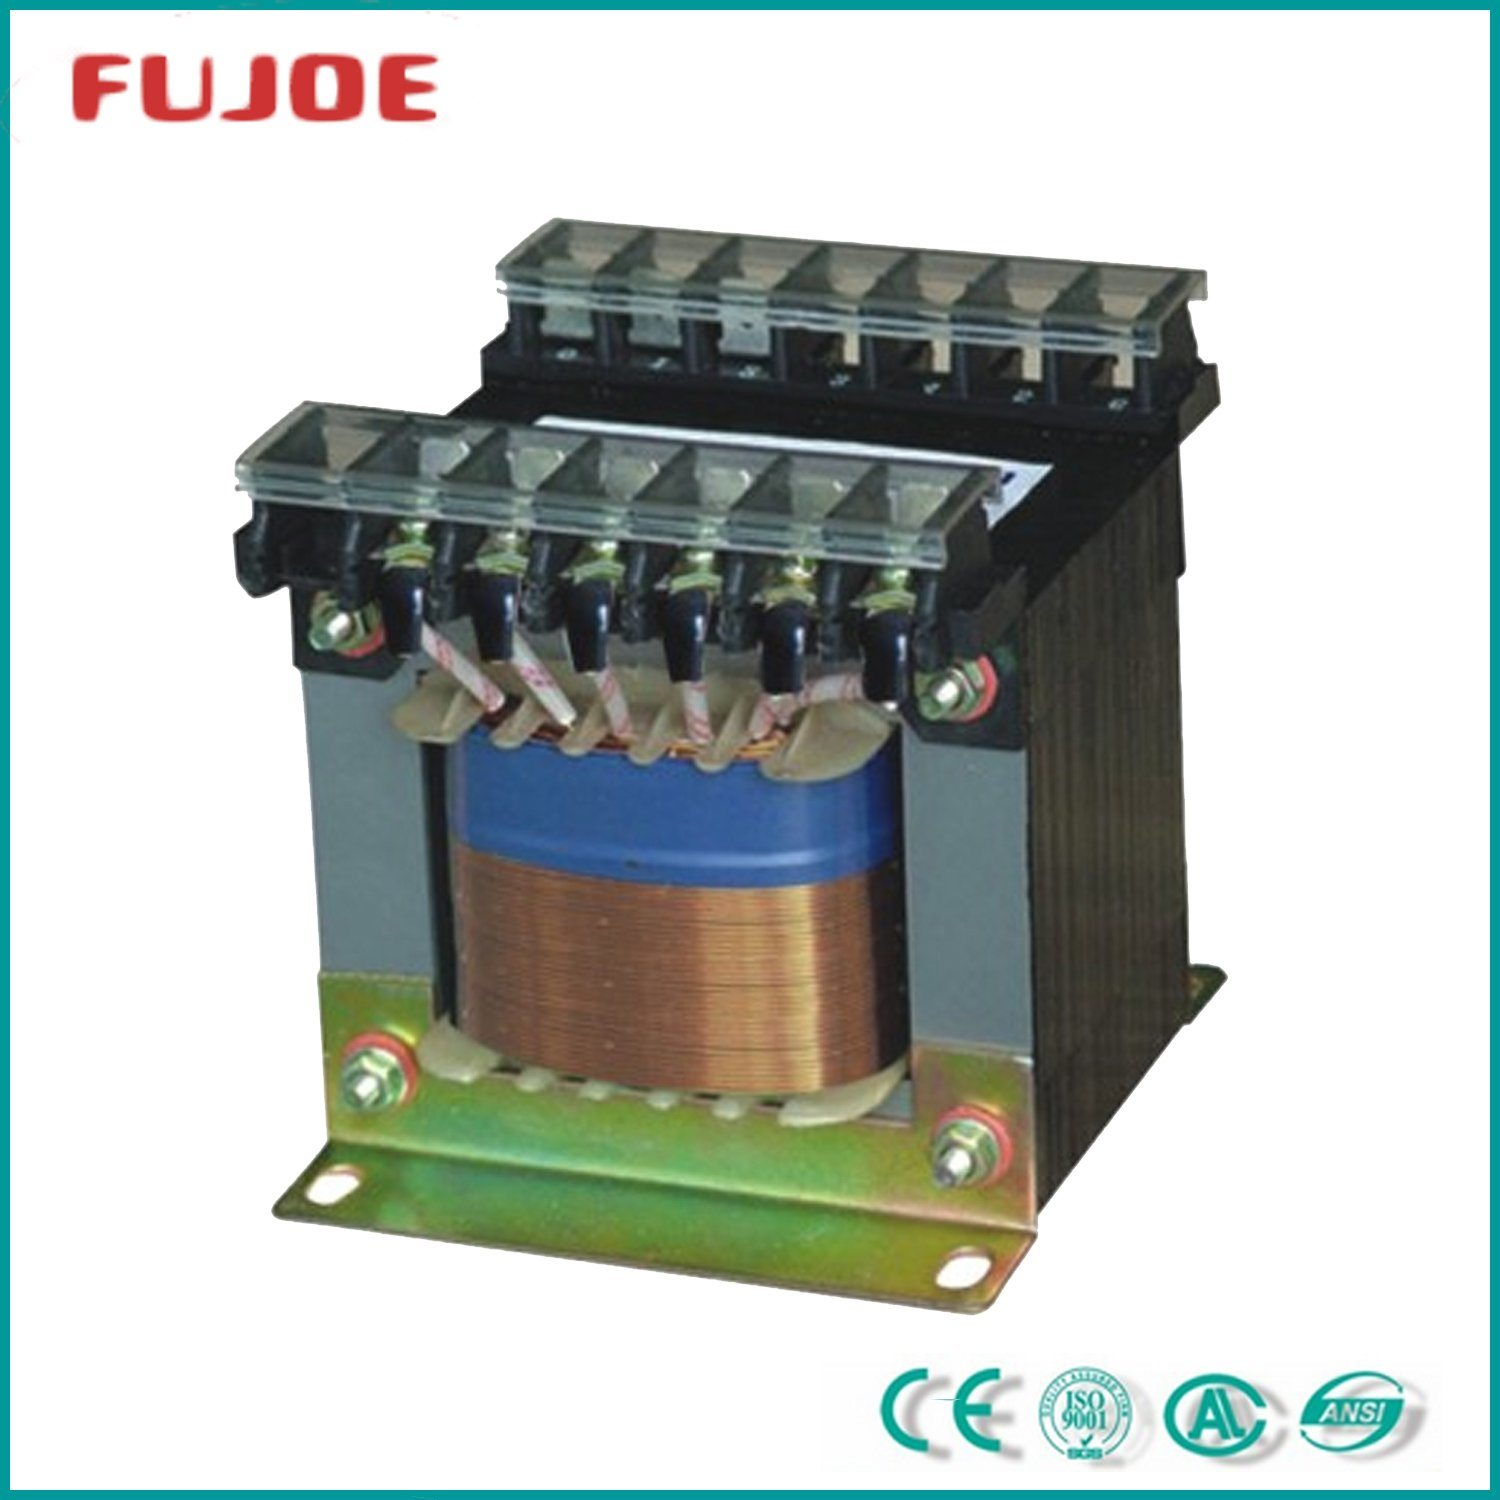 Jbk3-250 Series Machine Tools Control Panel Power Transformer